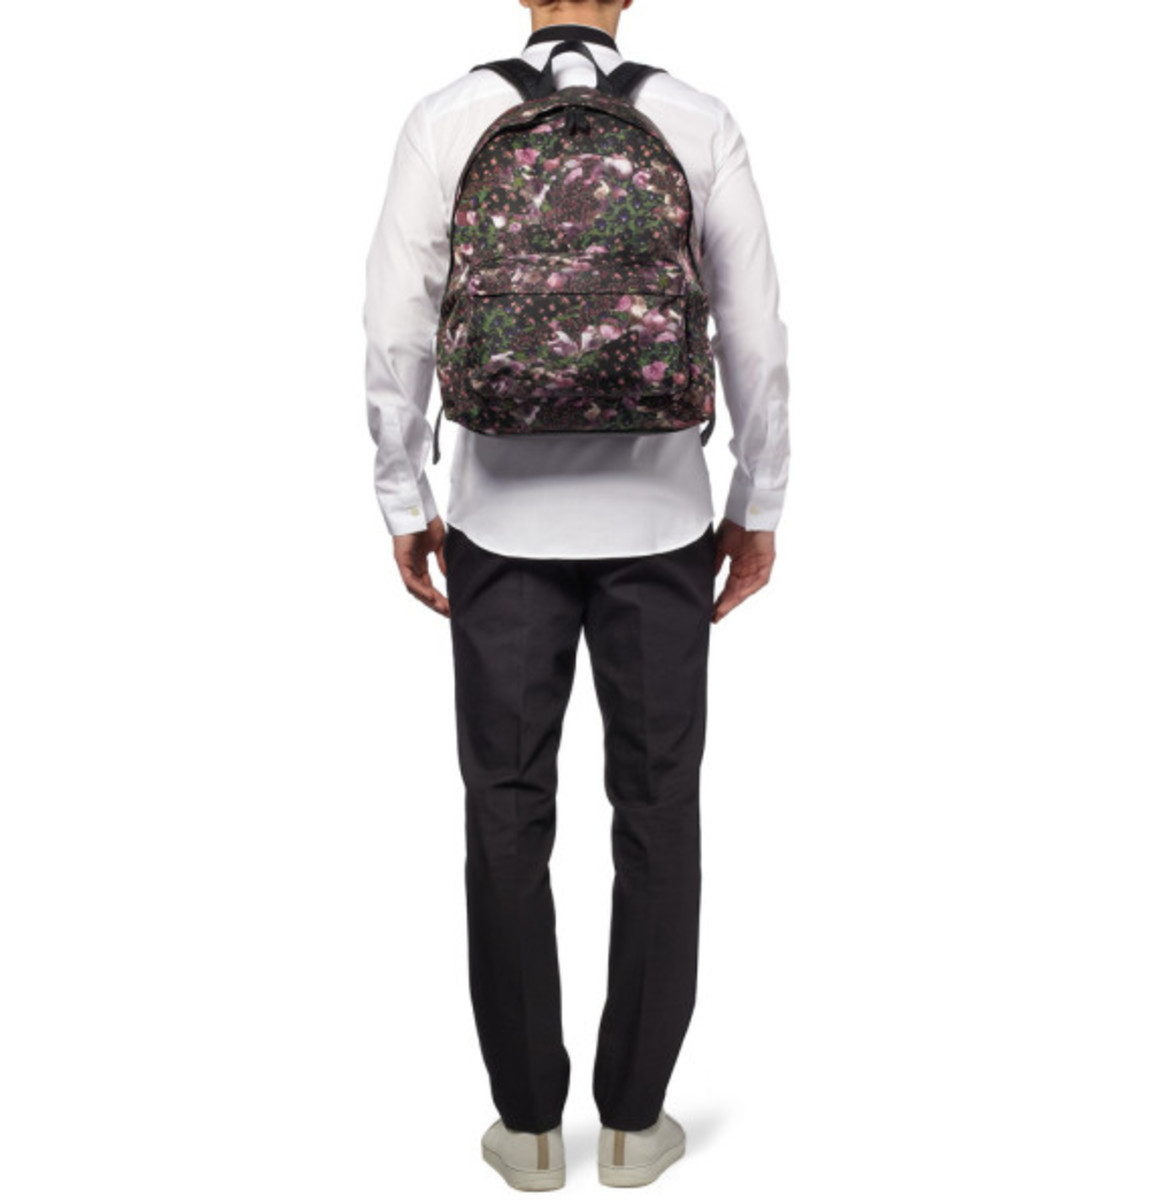 givenchy-floral-print-backpack-08